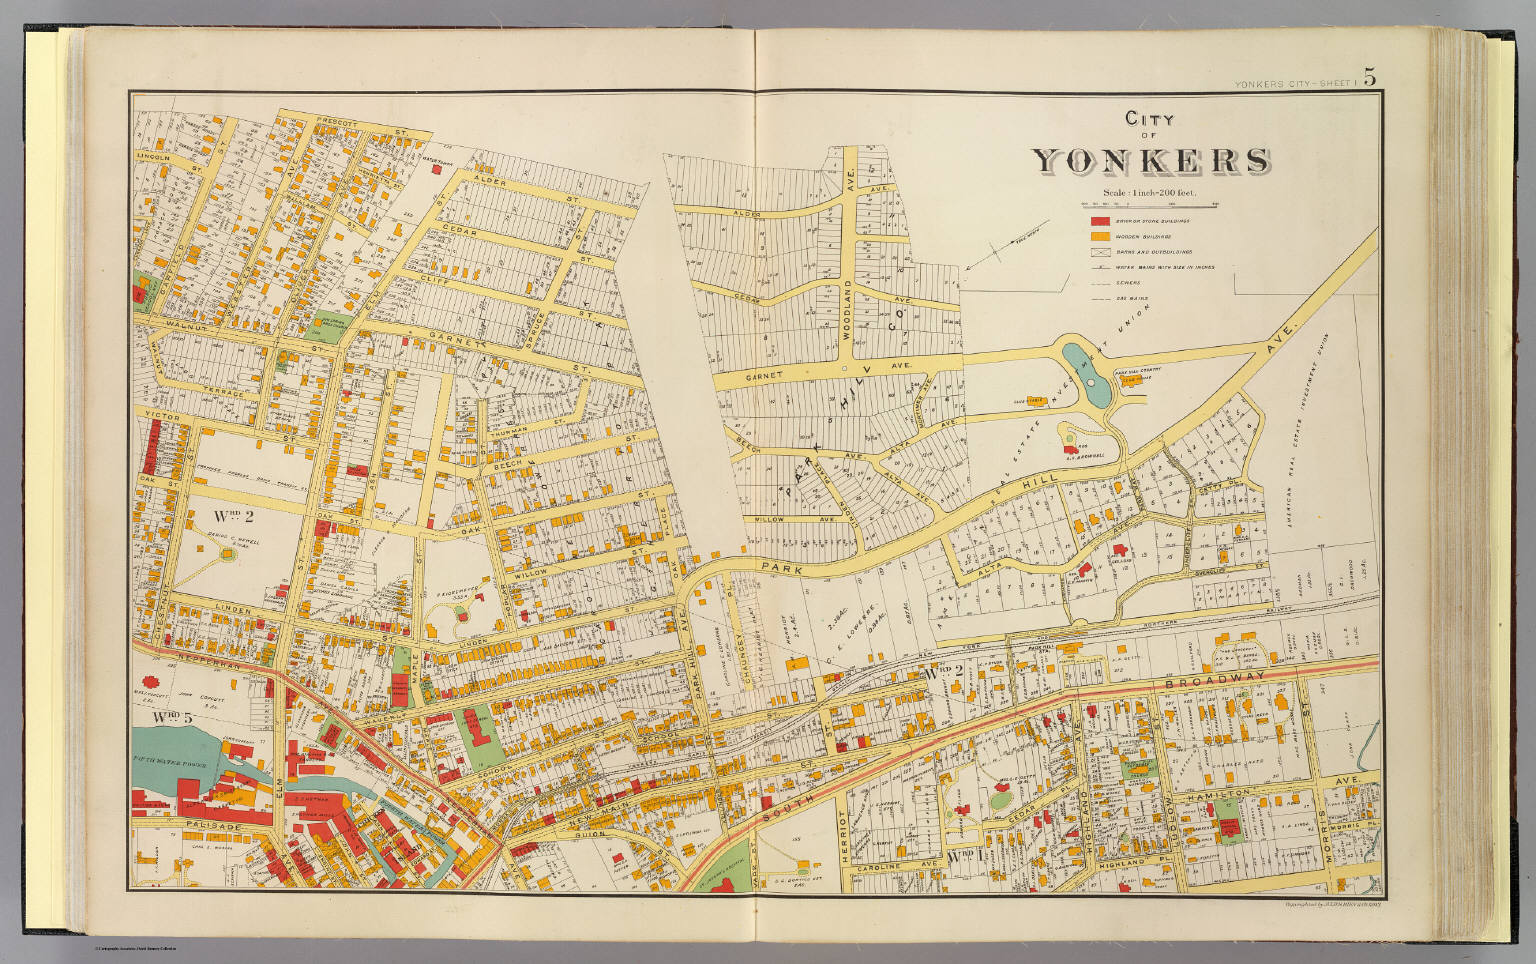 Yonkers 1 David Rumsey Historical Map Collection